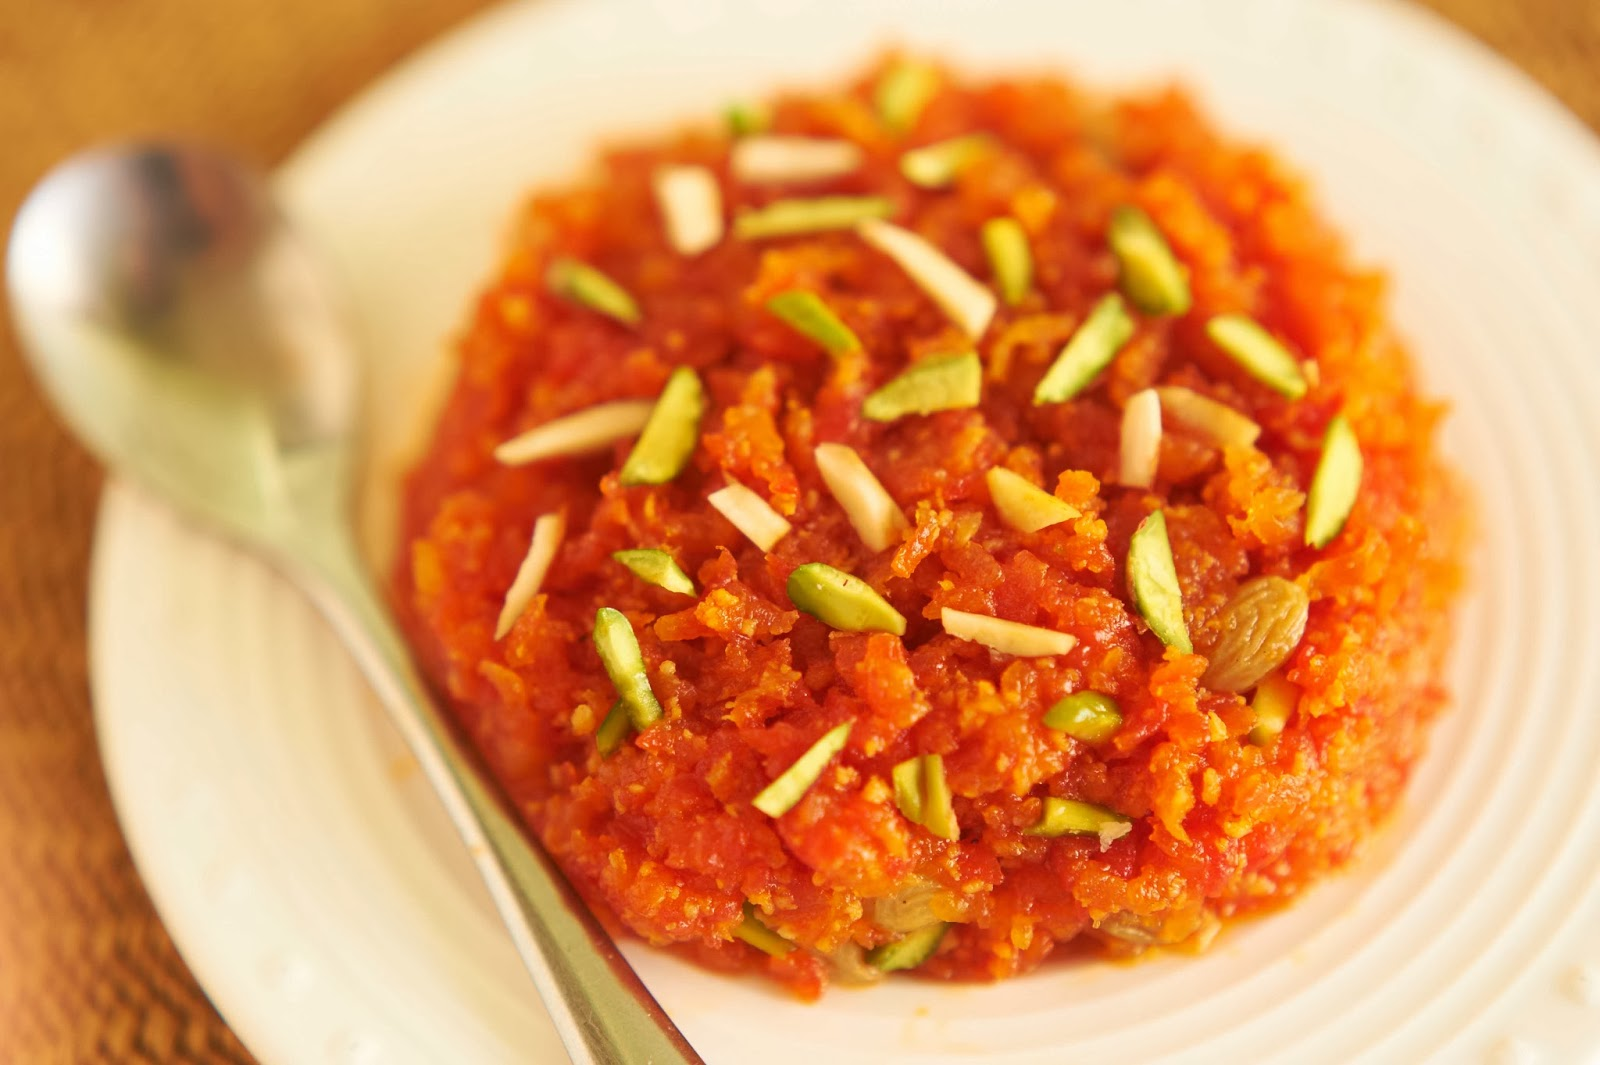 Gajar ka halwa sindhi gajrun jo seero bharat mirchandani food nb khoya is a product i dont use most of the khoya tested by various laboratories have found traces of salmonella shops selling it dont refrigerate it forumfinder Gallery